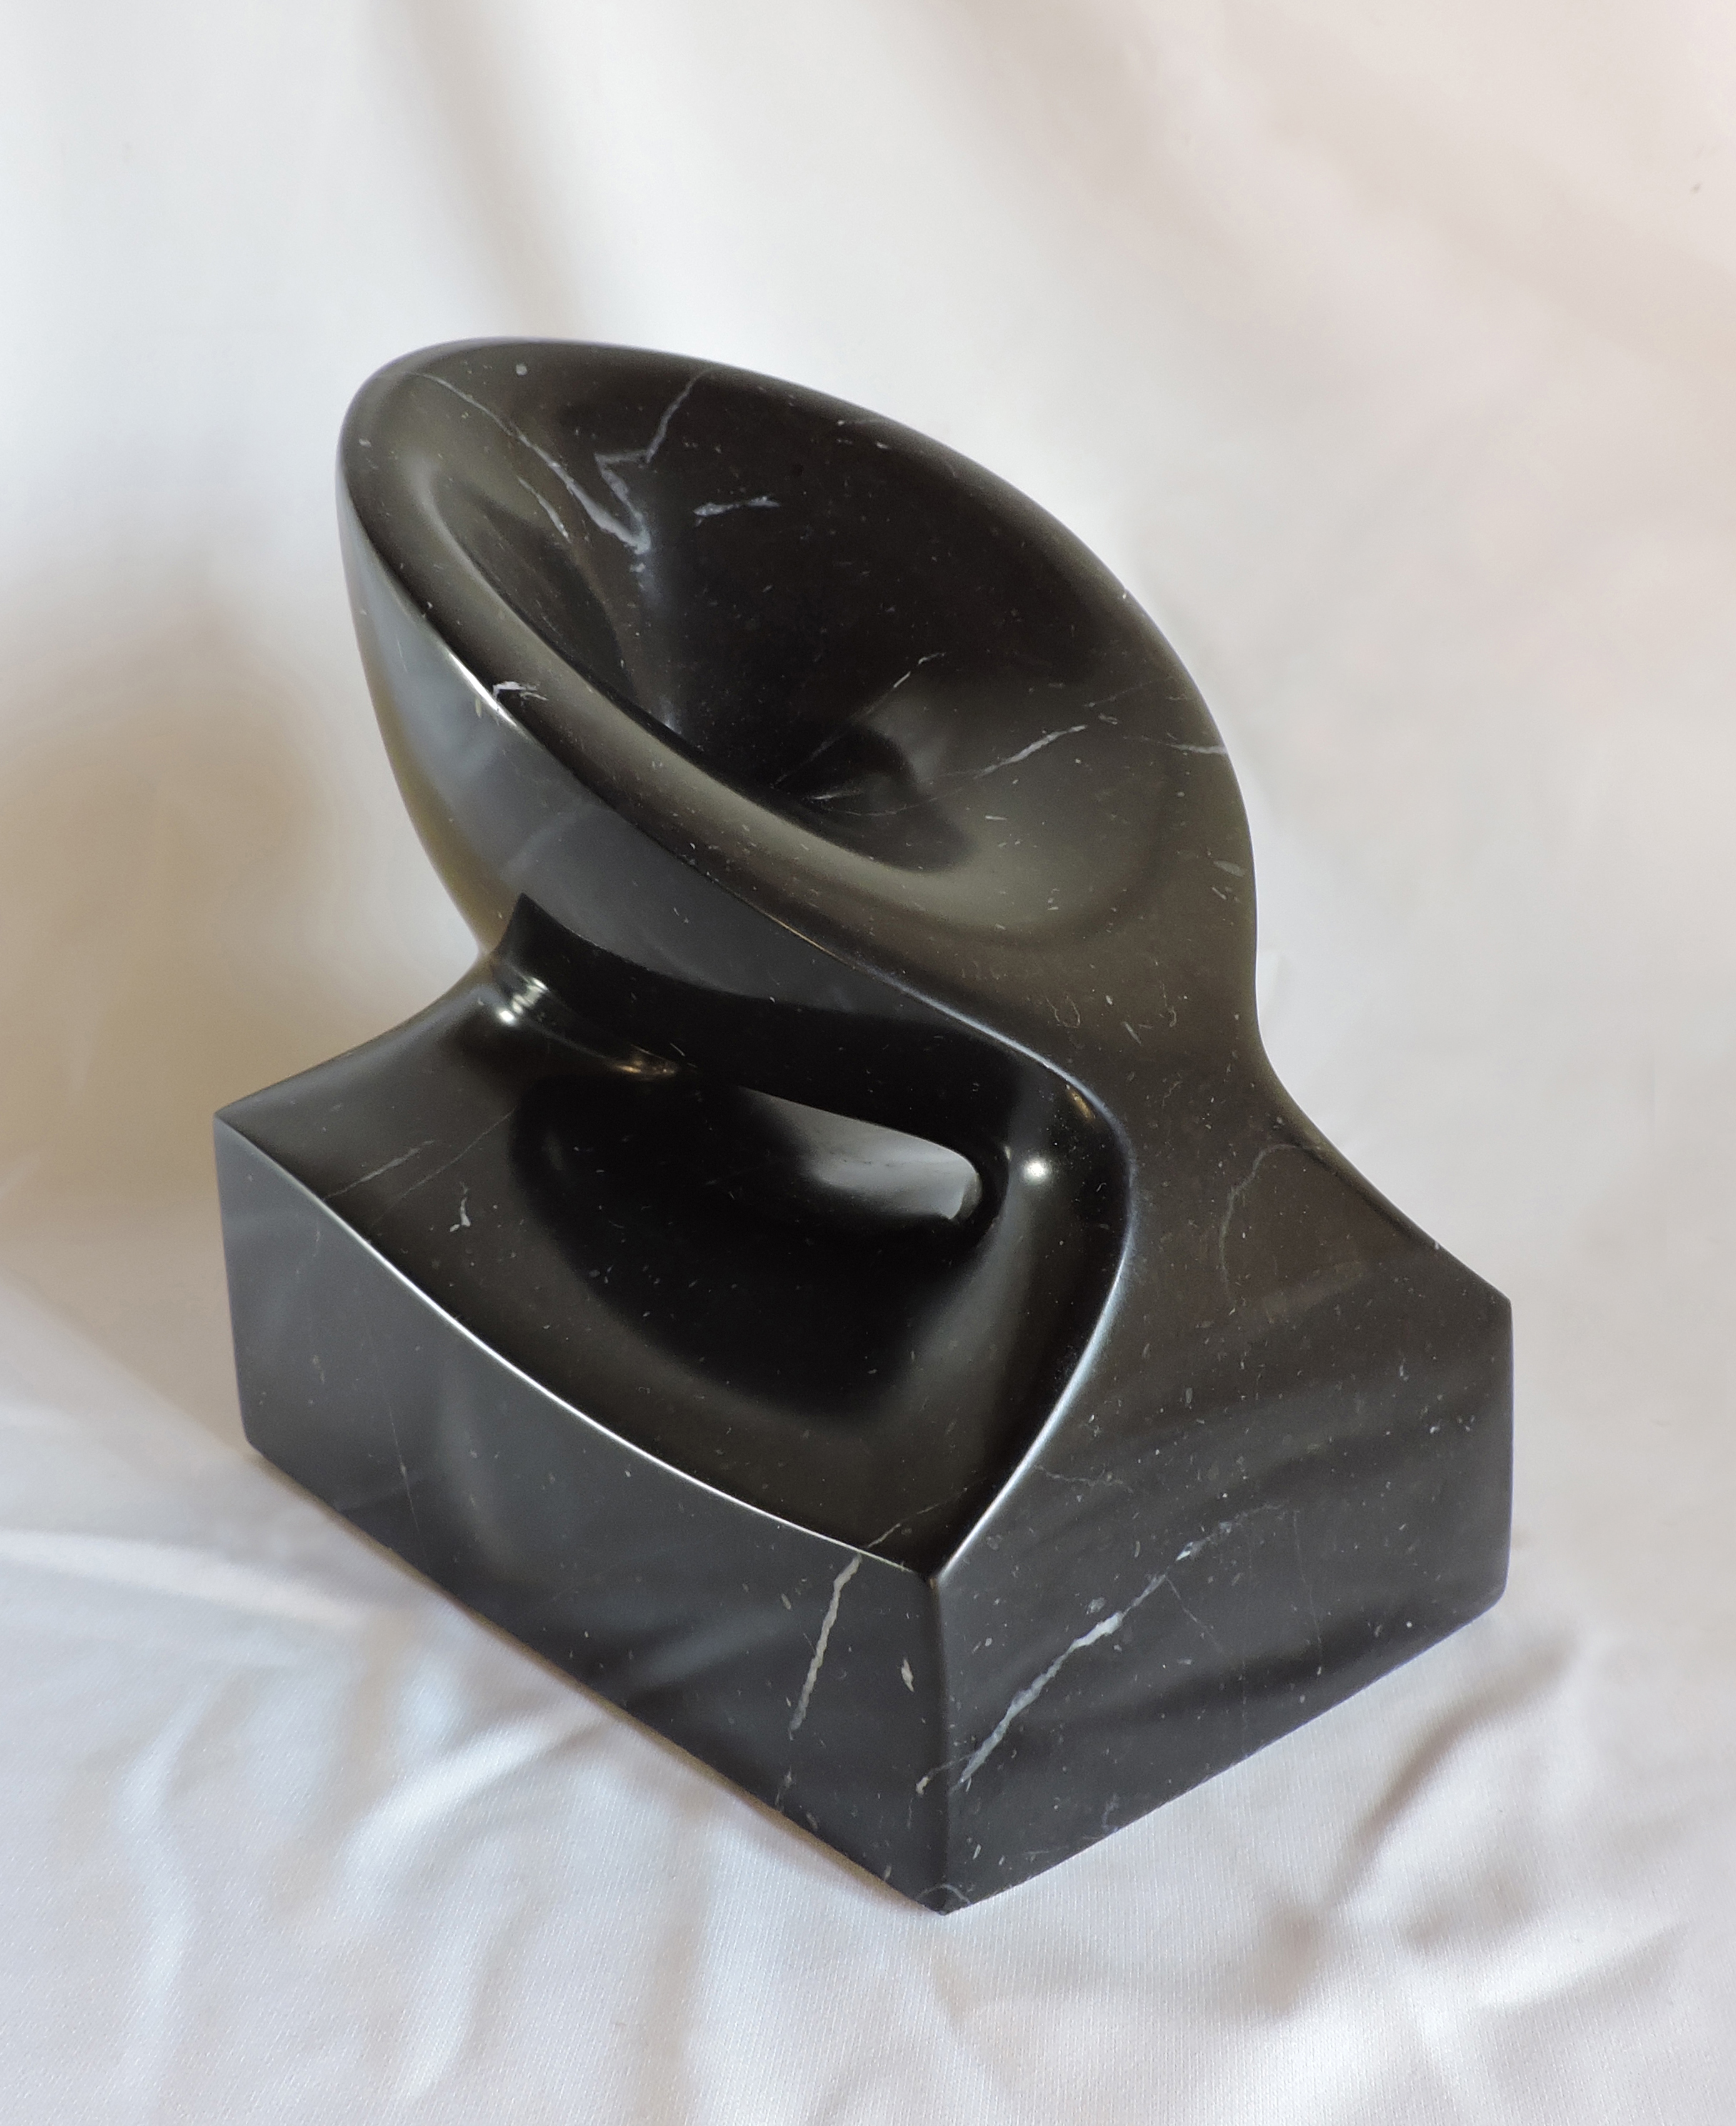 Continuity - h 19 cm  marquina marble  2014